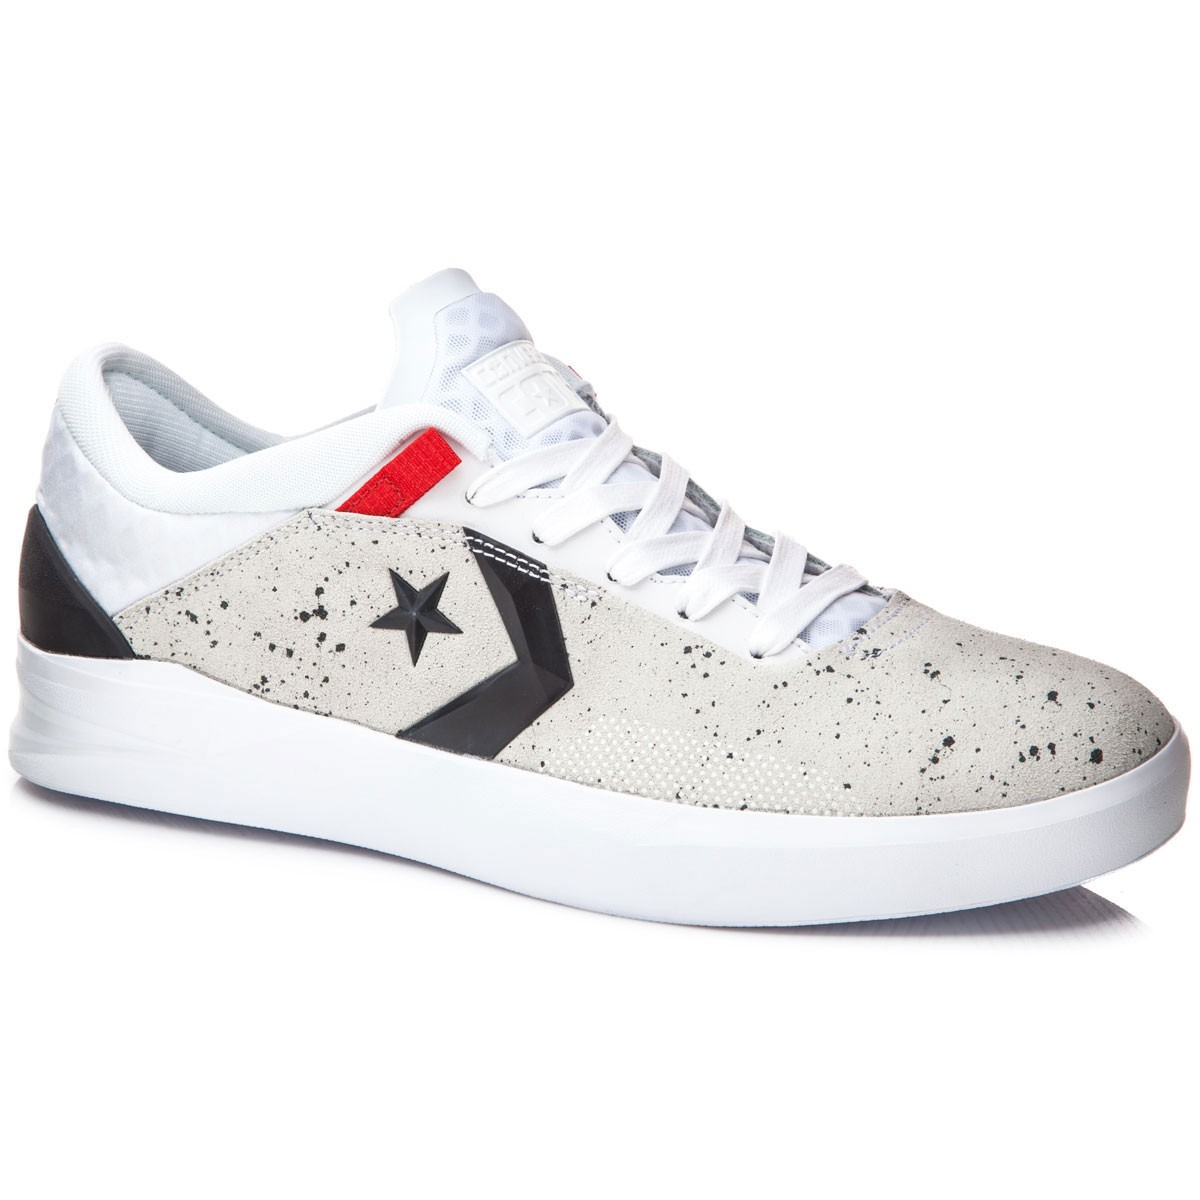 Converse Black And Red Canvas Shoes